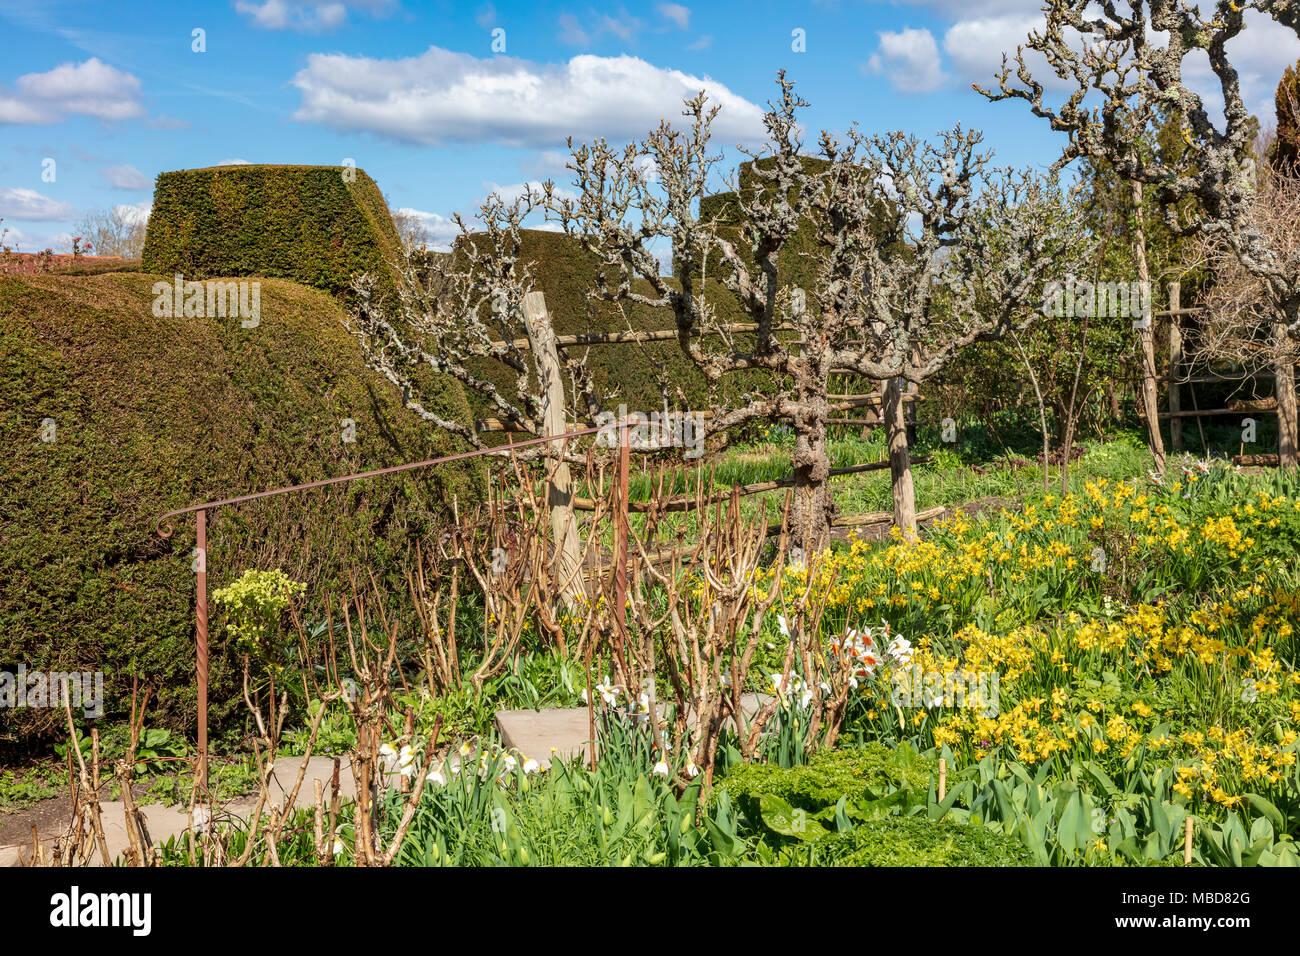 The gardens at Great Dixter in the early spring season, very few ...